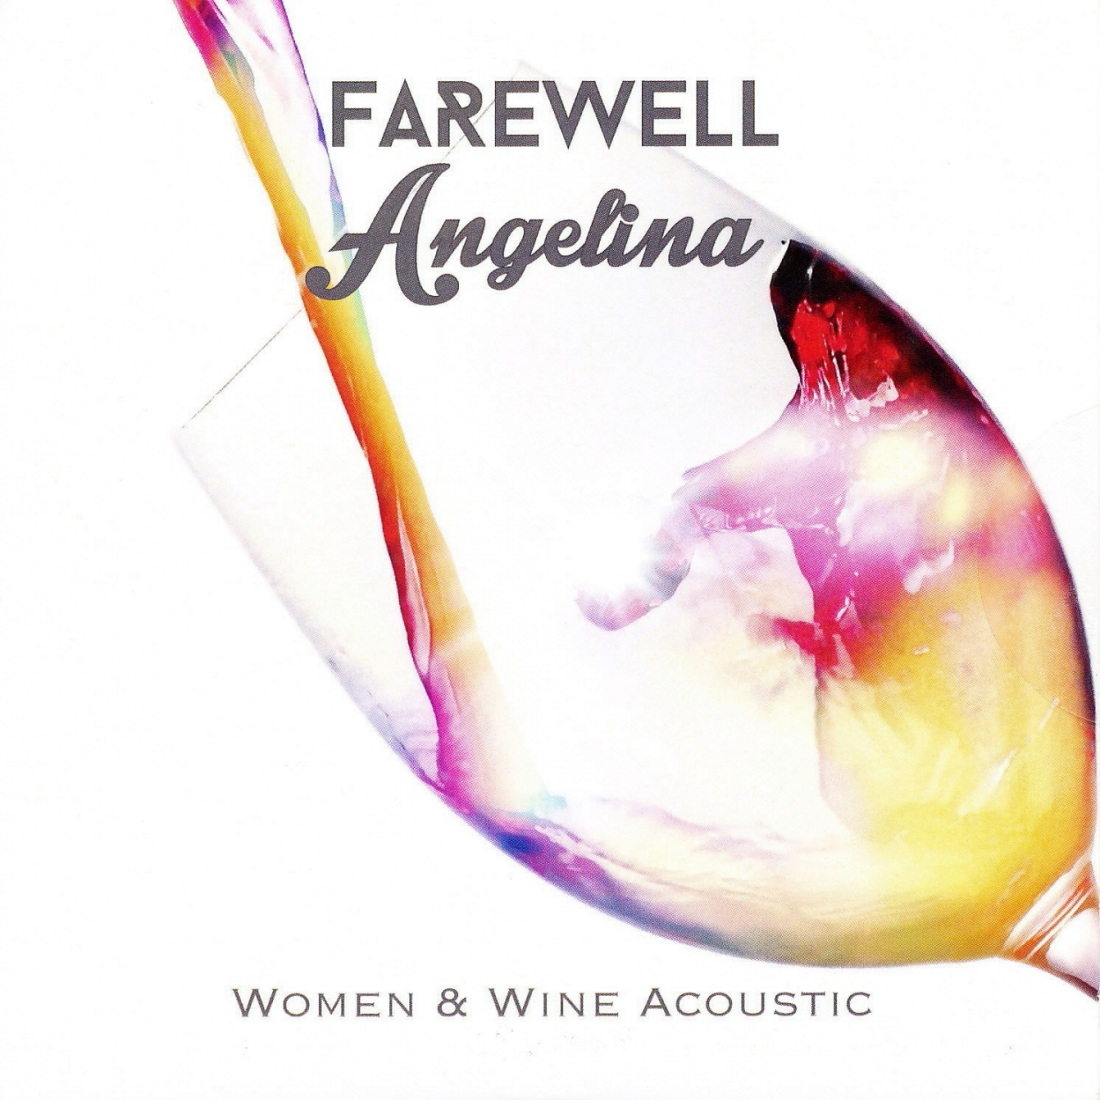 farewell angelina - Copy